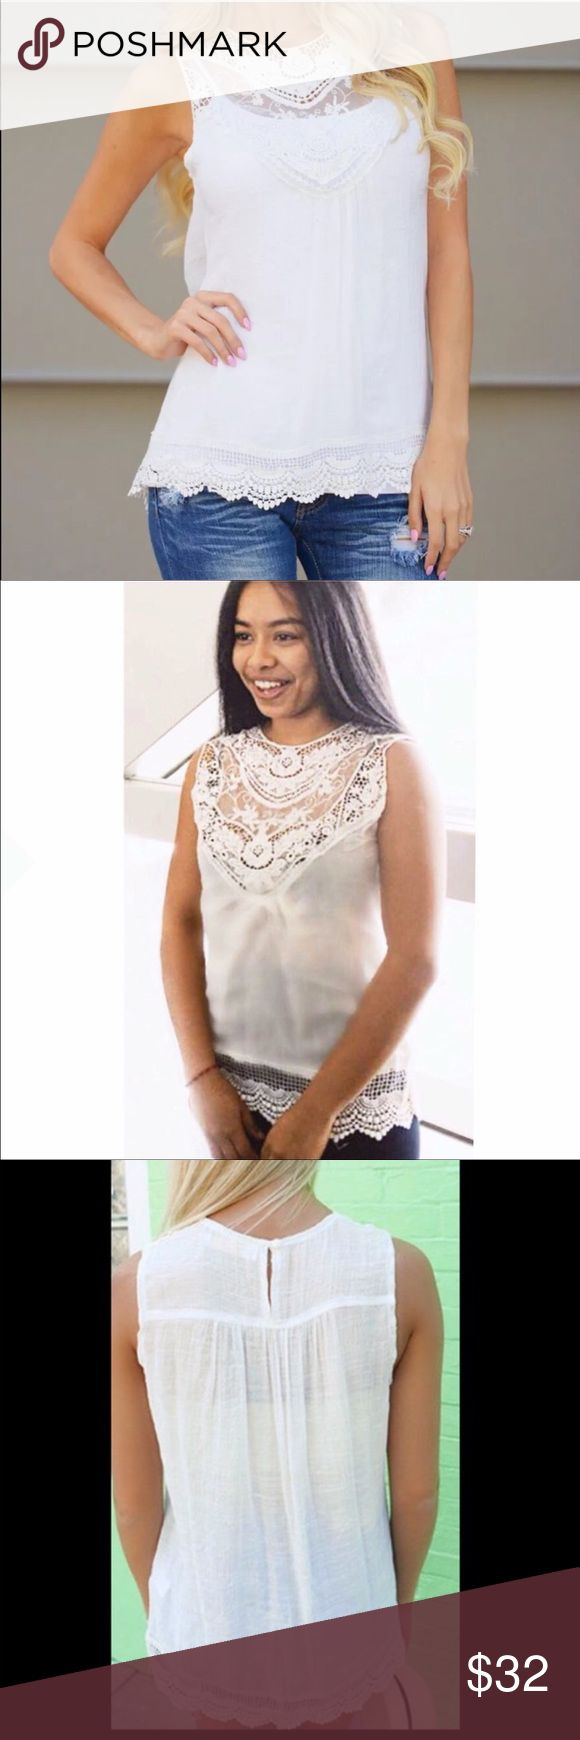 White Lace Tank Tunic, Perfect for Summer White lace and semi sheer tank-tunic with great detailed hem.  Please see cover pic for the look with a camisole- lots of beautiful lace!  Picture 2 is of a model wearing the top alone, just a bra- even more lace shows.  Great with jeans, shorts, the beach, or dress it up with the right jewelry.  This is a ⭐️⭐️⭐️⭐️⭐️favorite for my buyers and it will be a go-to piece for you! (A5) Lalea Tops